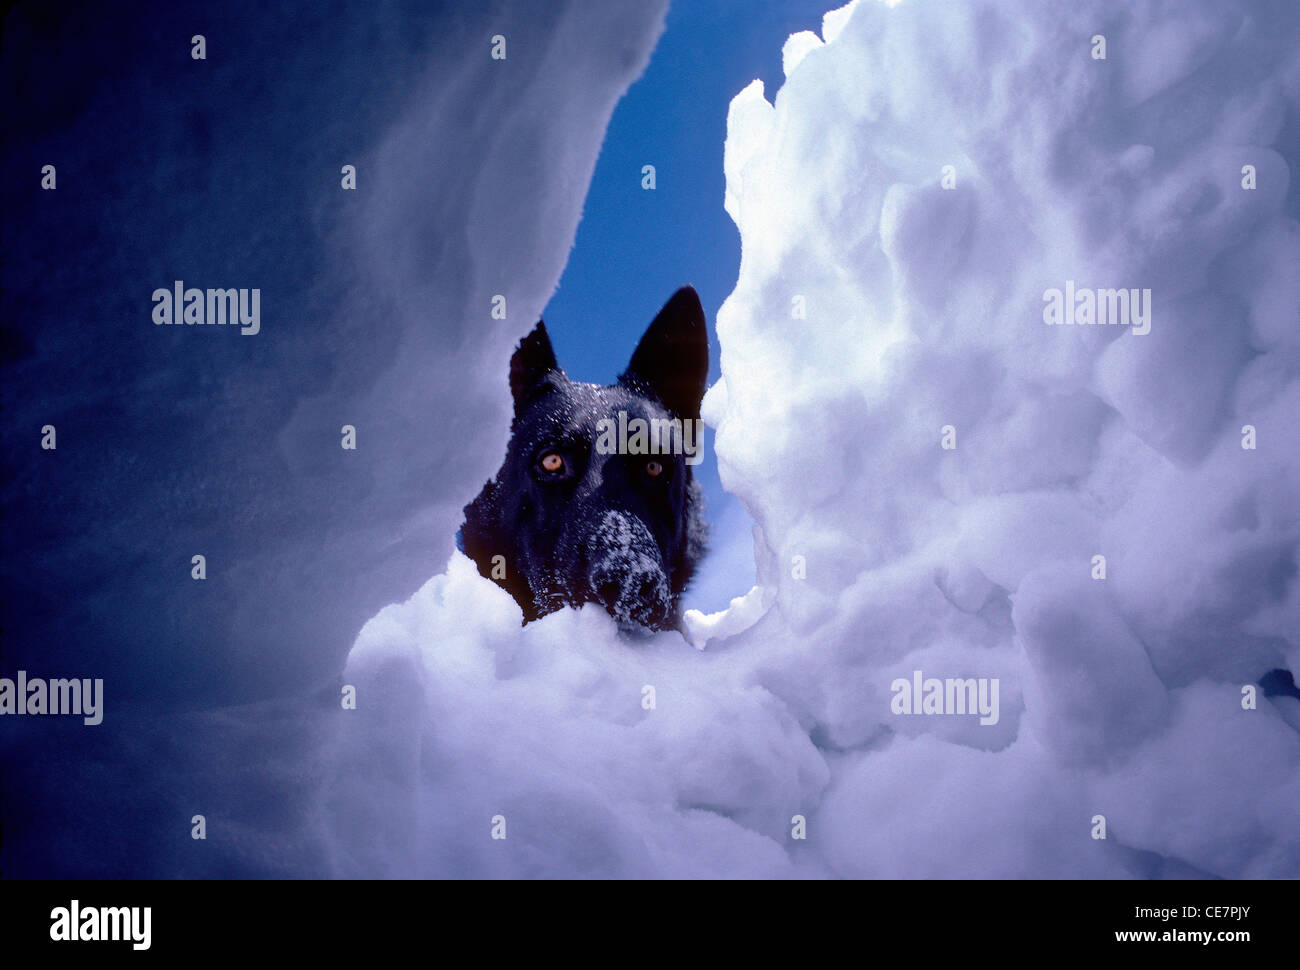 Under snow view of search and rescue dog, from buried skier, avalanche victim, awaiting rescue under the snow. - Stock Image